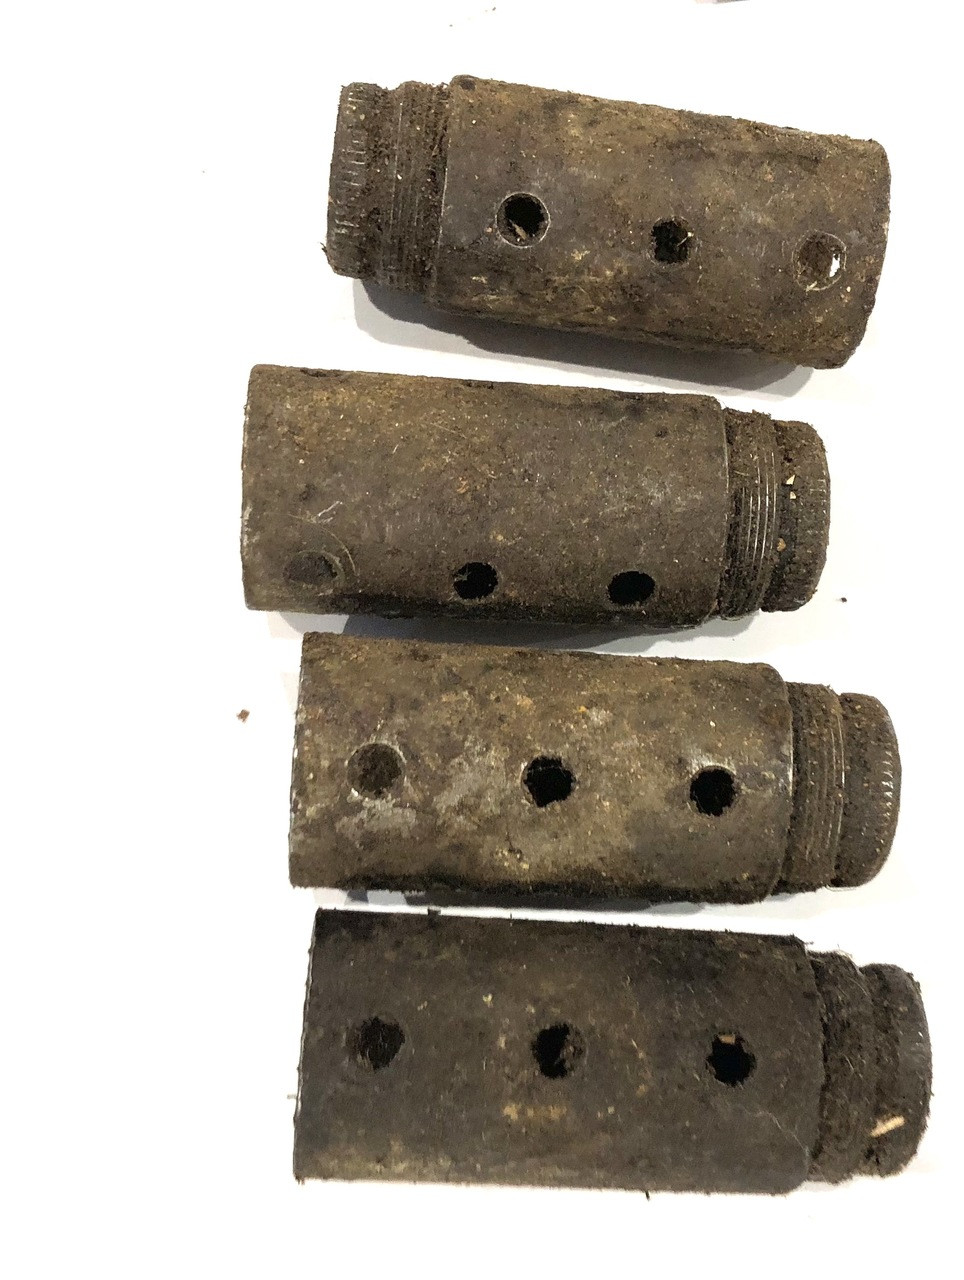 STEN Lot: 4 x Barrel Nuts, Stocks, Covers, and Spring Housings (good/fair condition)